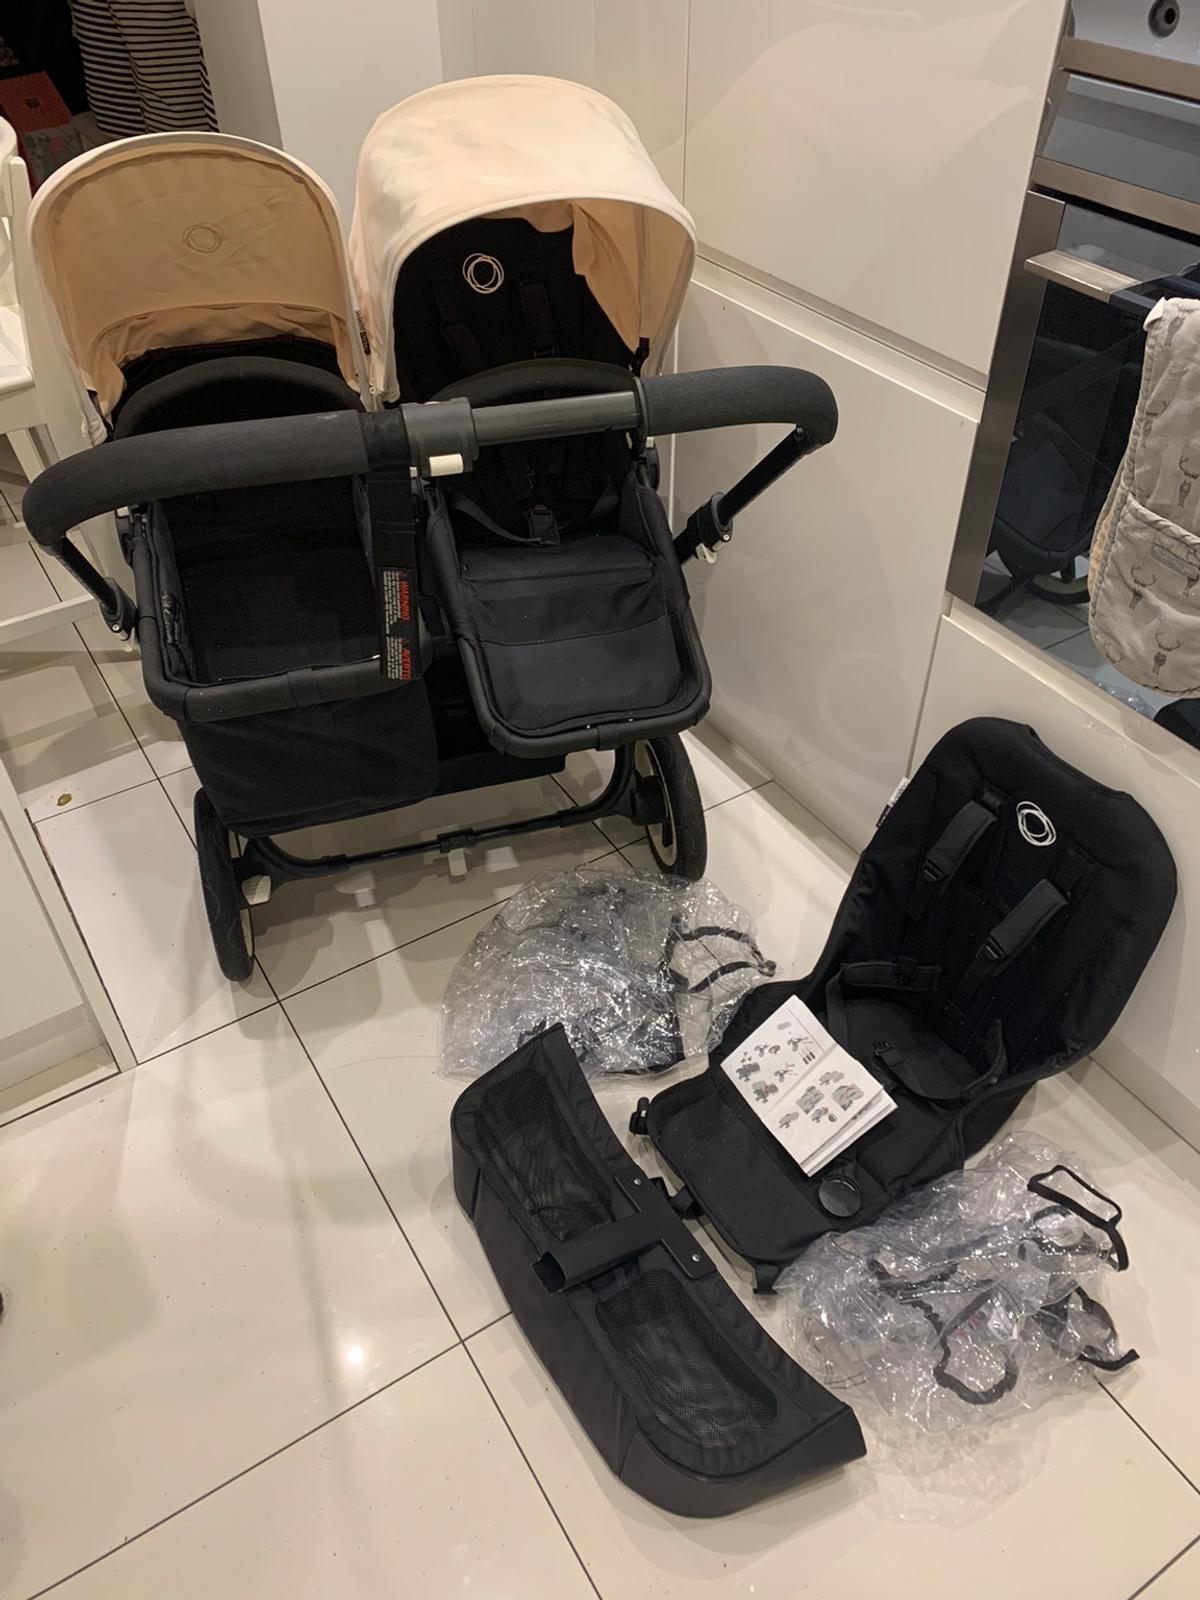 In great condition comes with two rain covers two seats one carrycot two cream hoods and basket all black frame